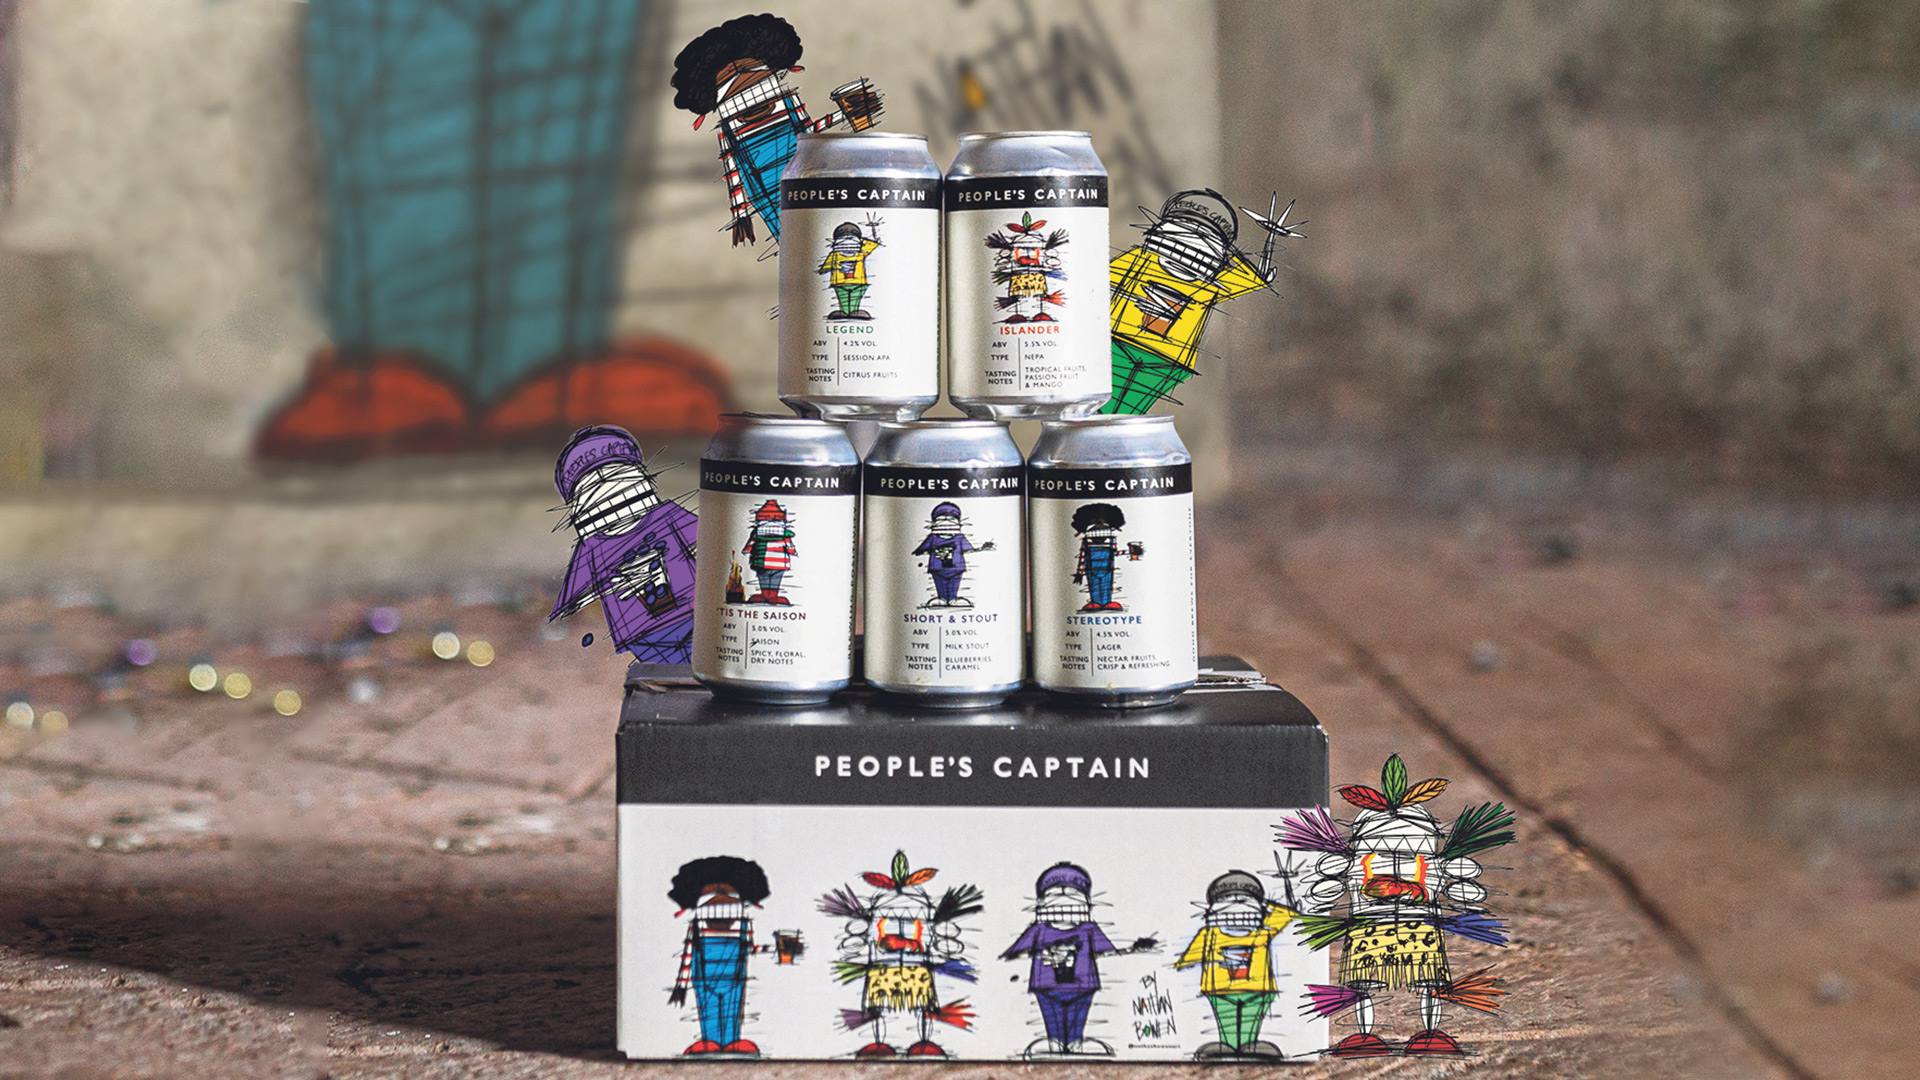 Win 10 boxes of award-winning beer from People's Captain Worth £290!